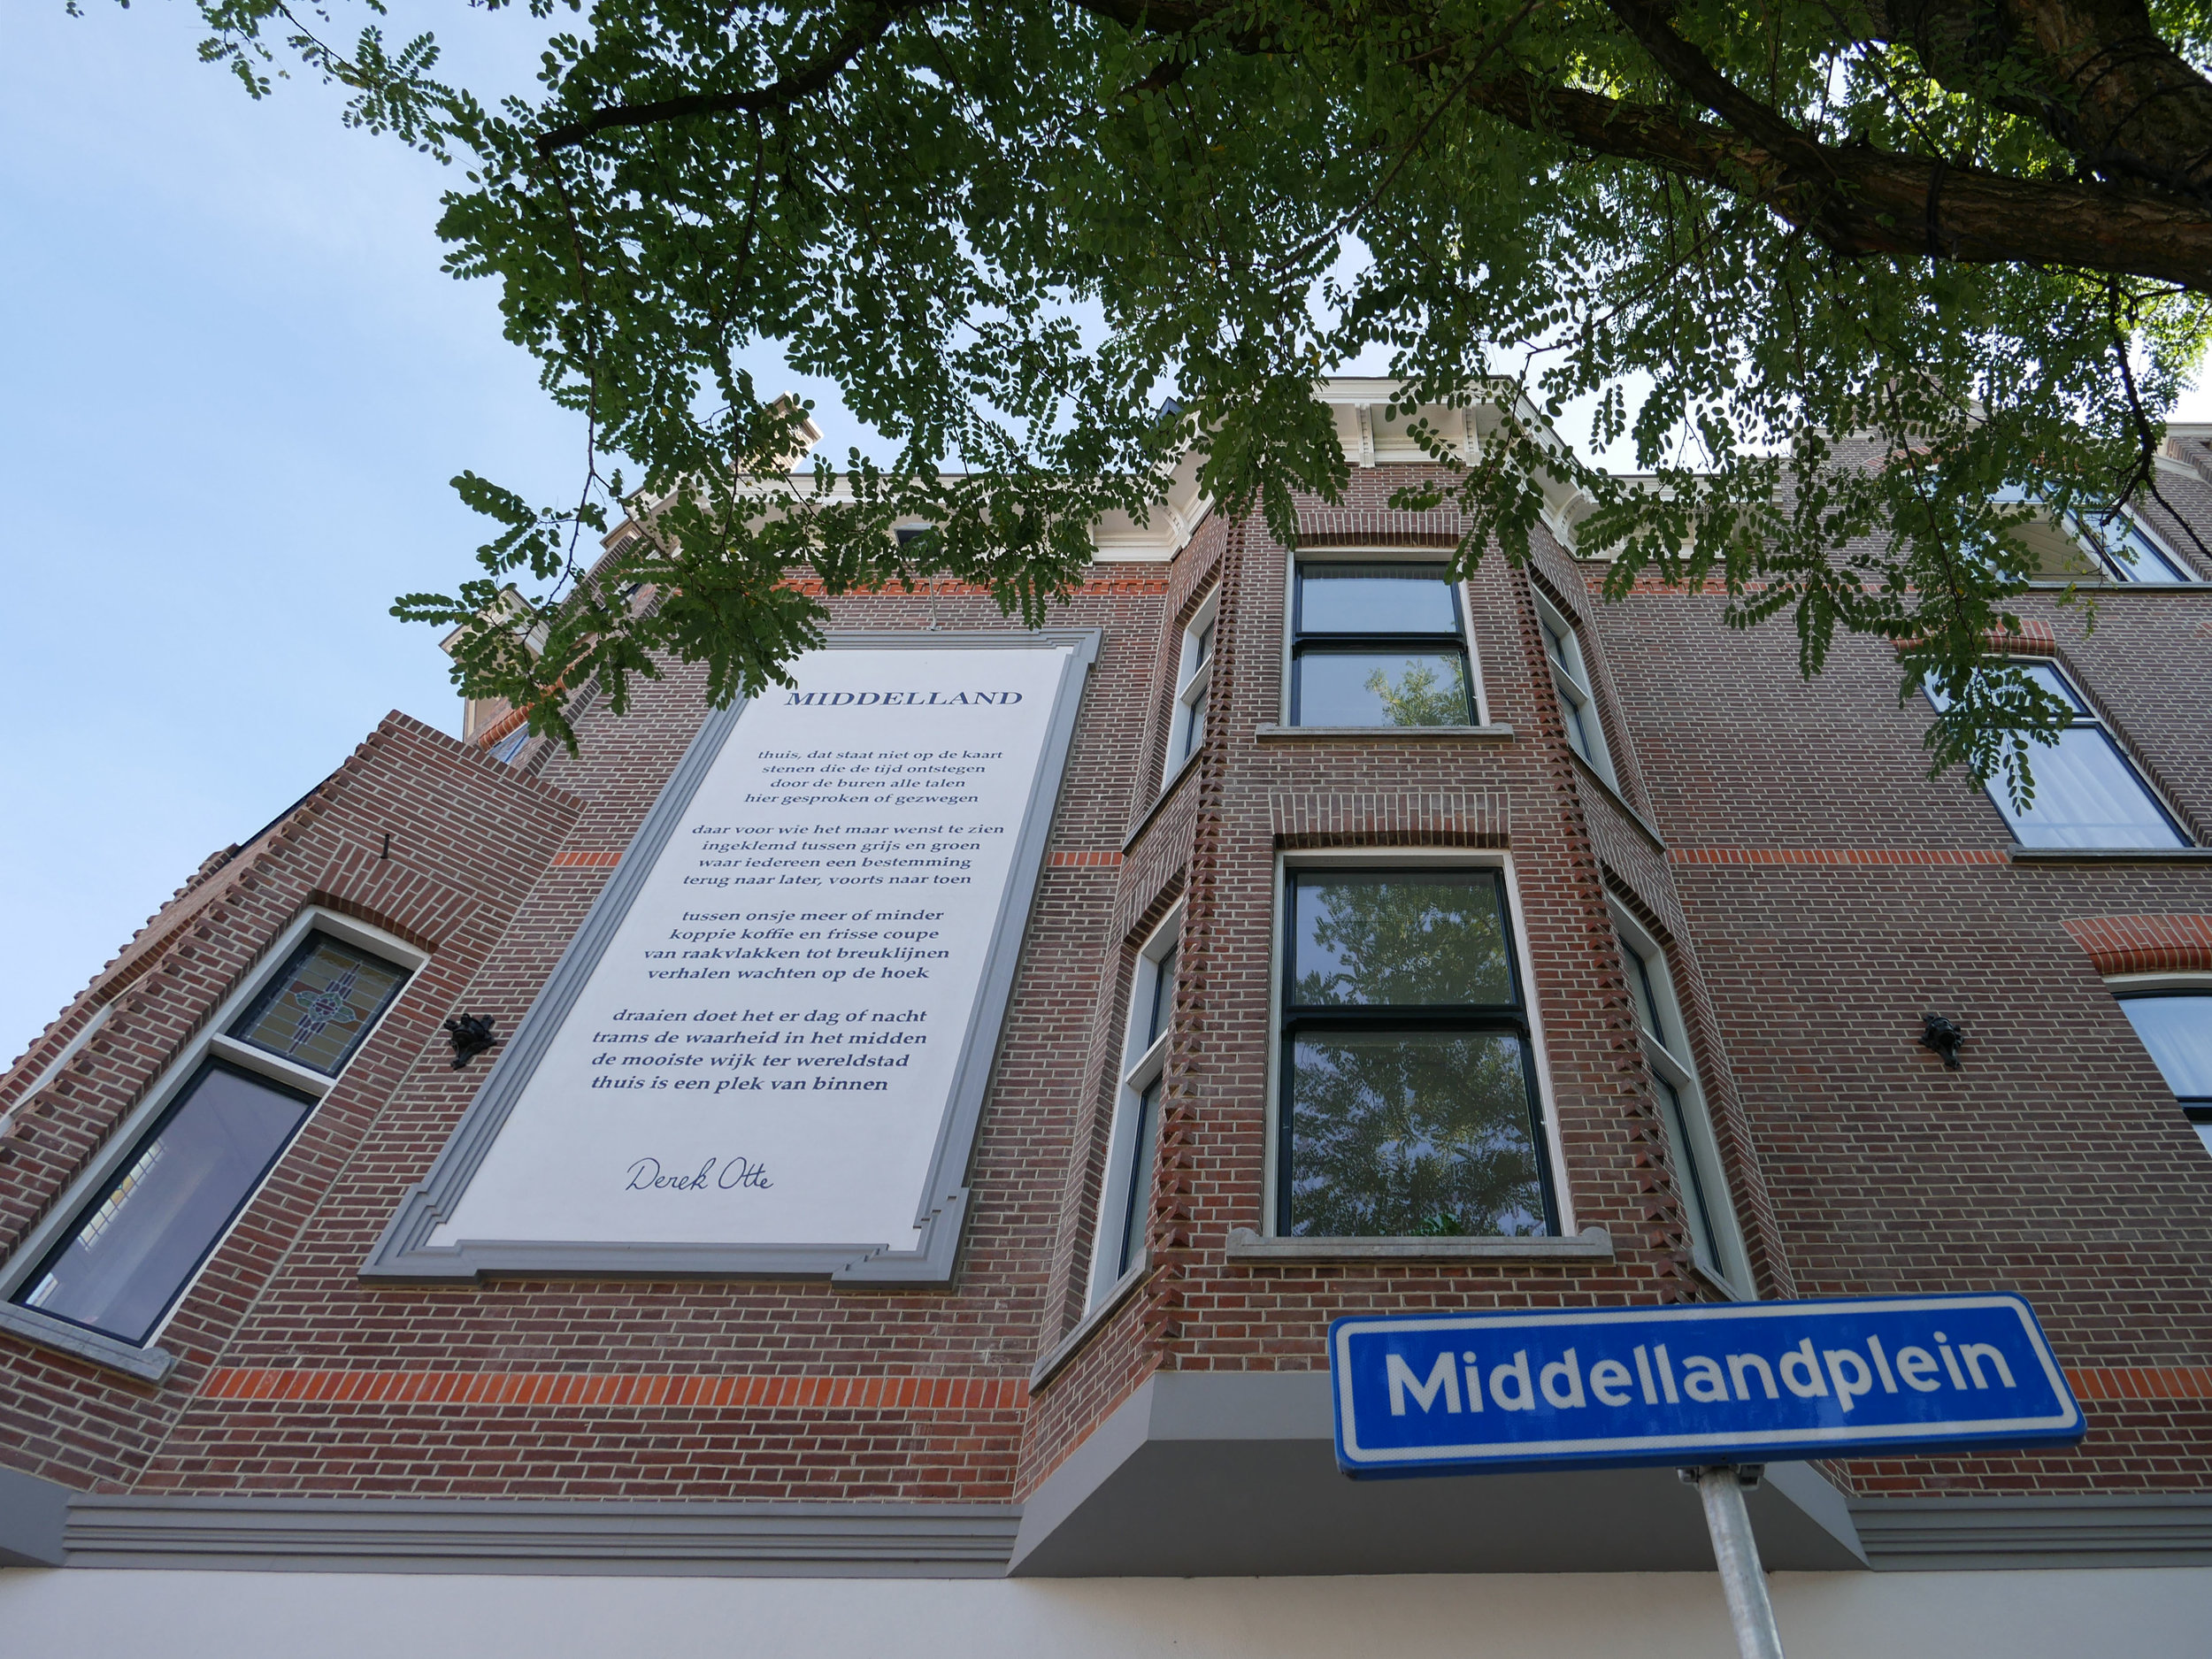 looking up to the restored brickwork façade with the classical advertisement frame and poetry by Derek Otte